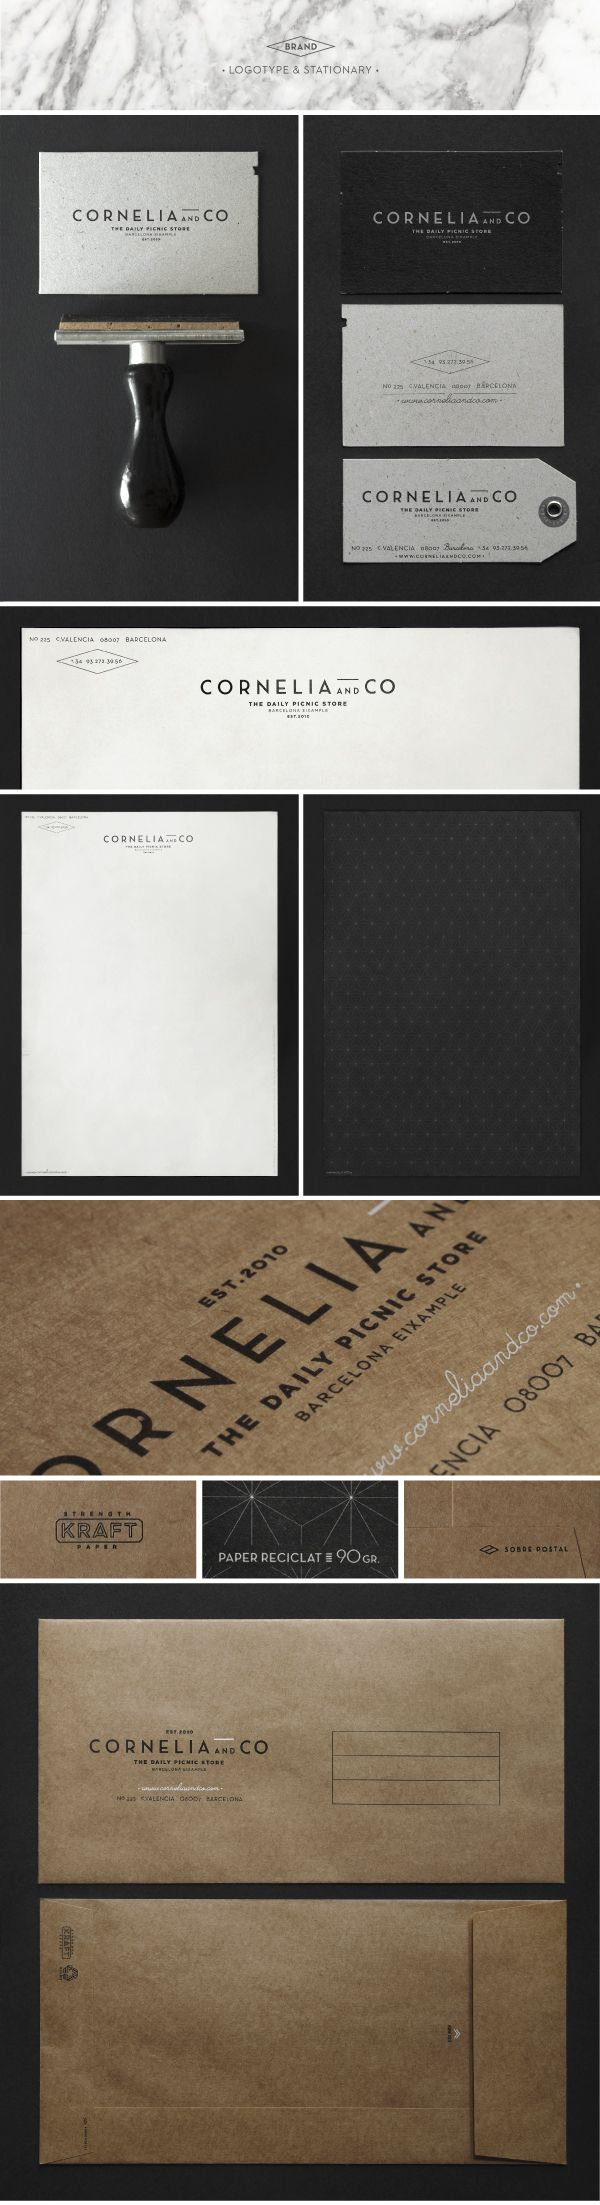 CORNELIA and CO / Brand identity & Packaging by Oriol Gil, via Behance